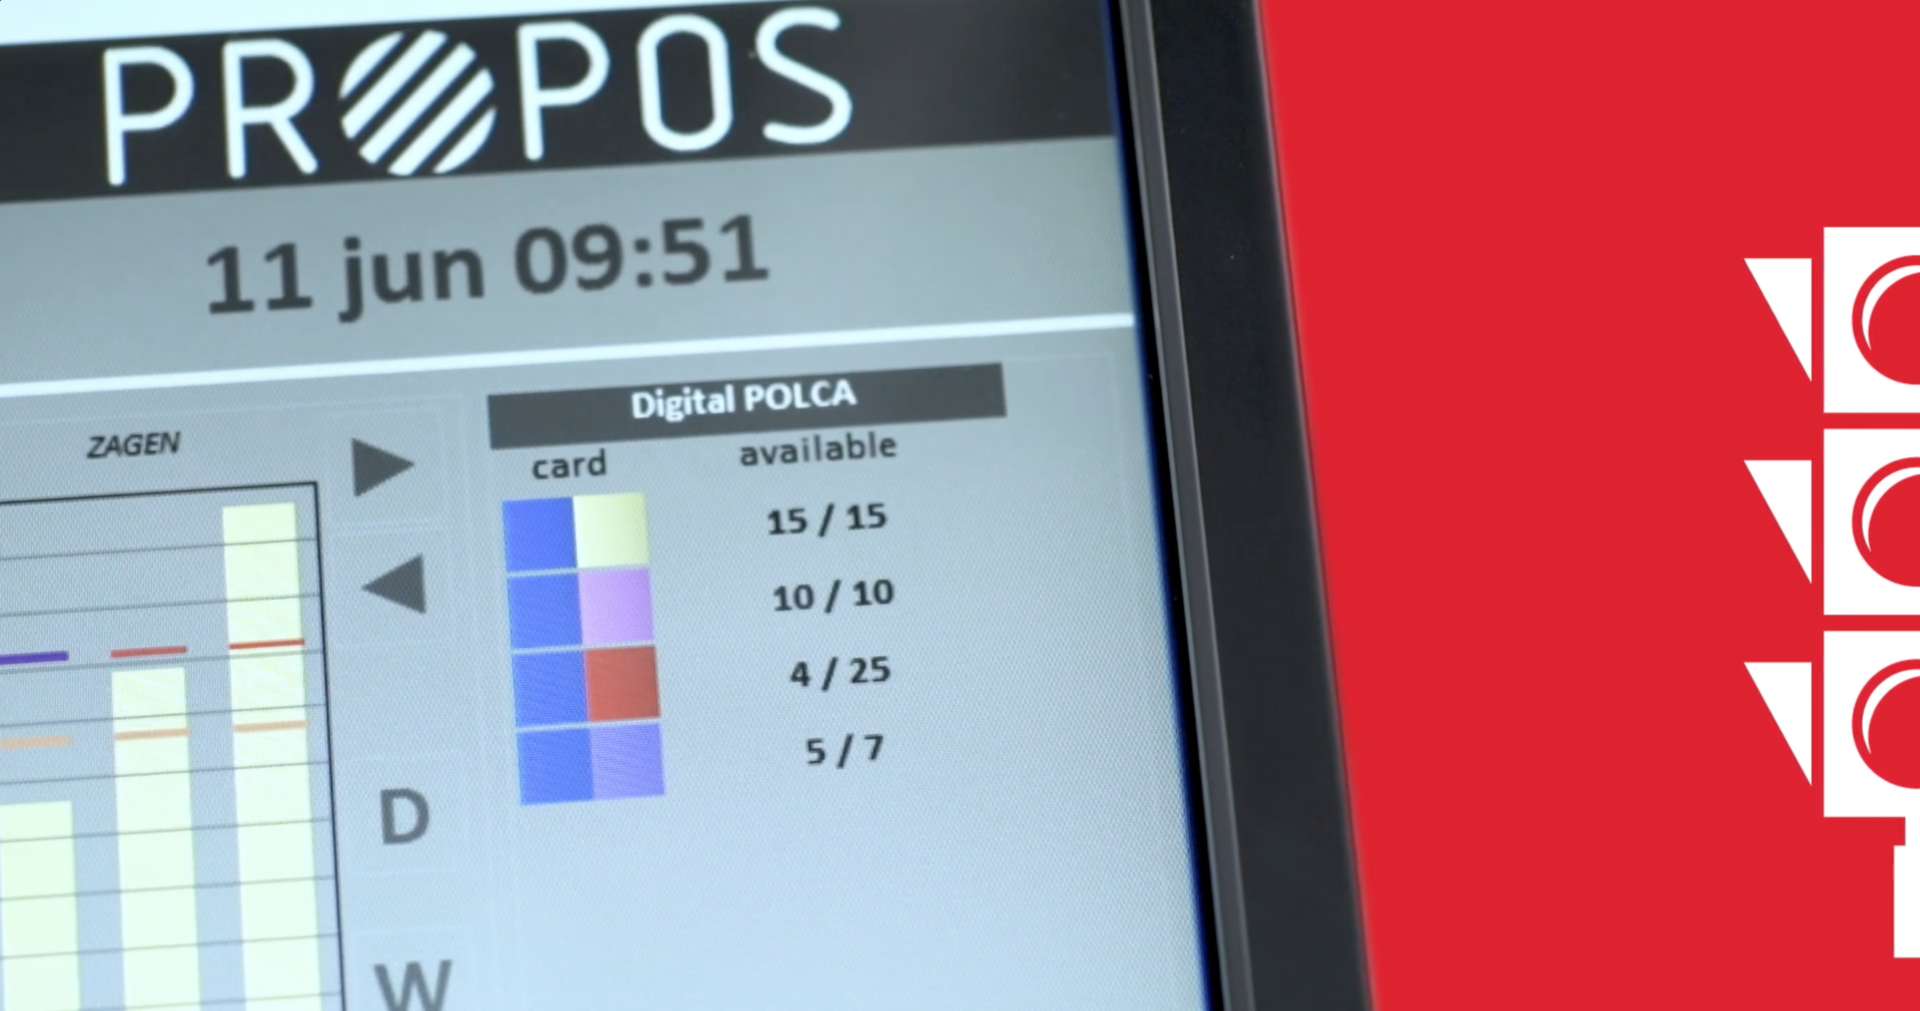 PROPOS start implementatie met Digital POLCA -